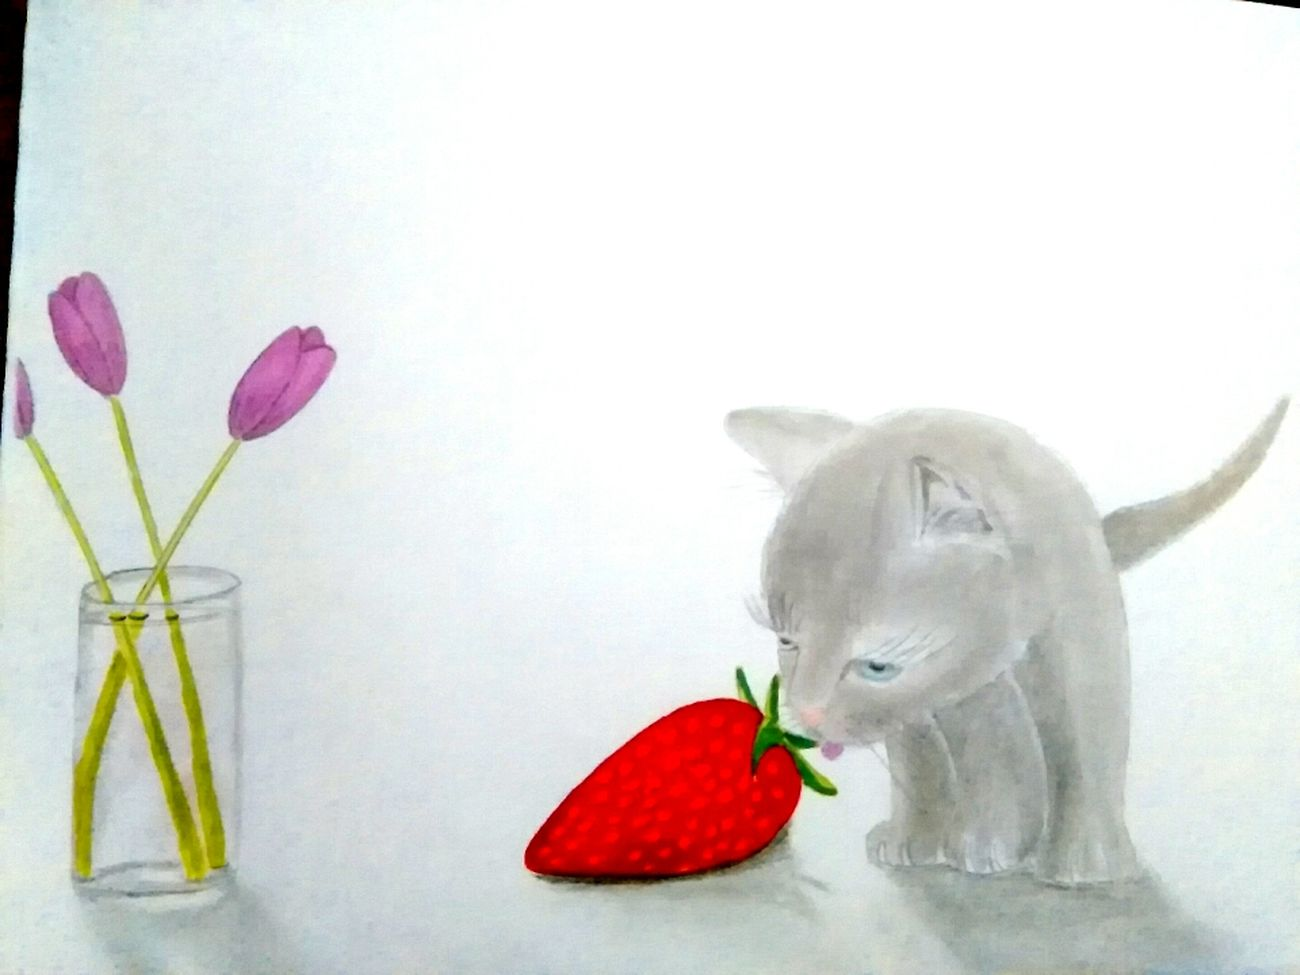 Un jour les chats domineront le monde et leurs premiers repas sera.... Des fraises 🍓🍓 Relaxing Taking Photos Hi! That's Me Check This Out Enjoying Life Hanging Out Hello World France Getting Inspired April French Getting Creative First Eyeem Photo Mypointofview Showcase April Drawing Draw Drawings Dessin ByJarod